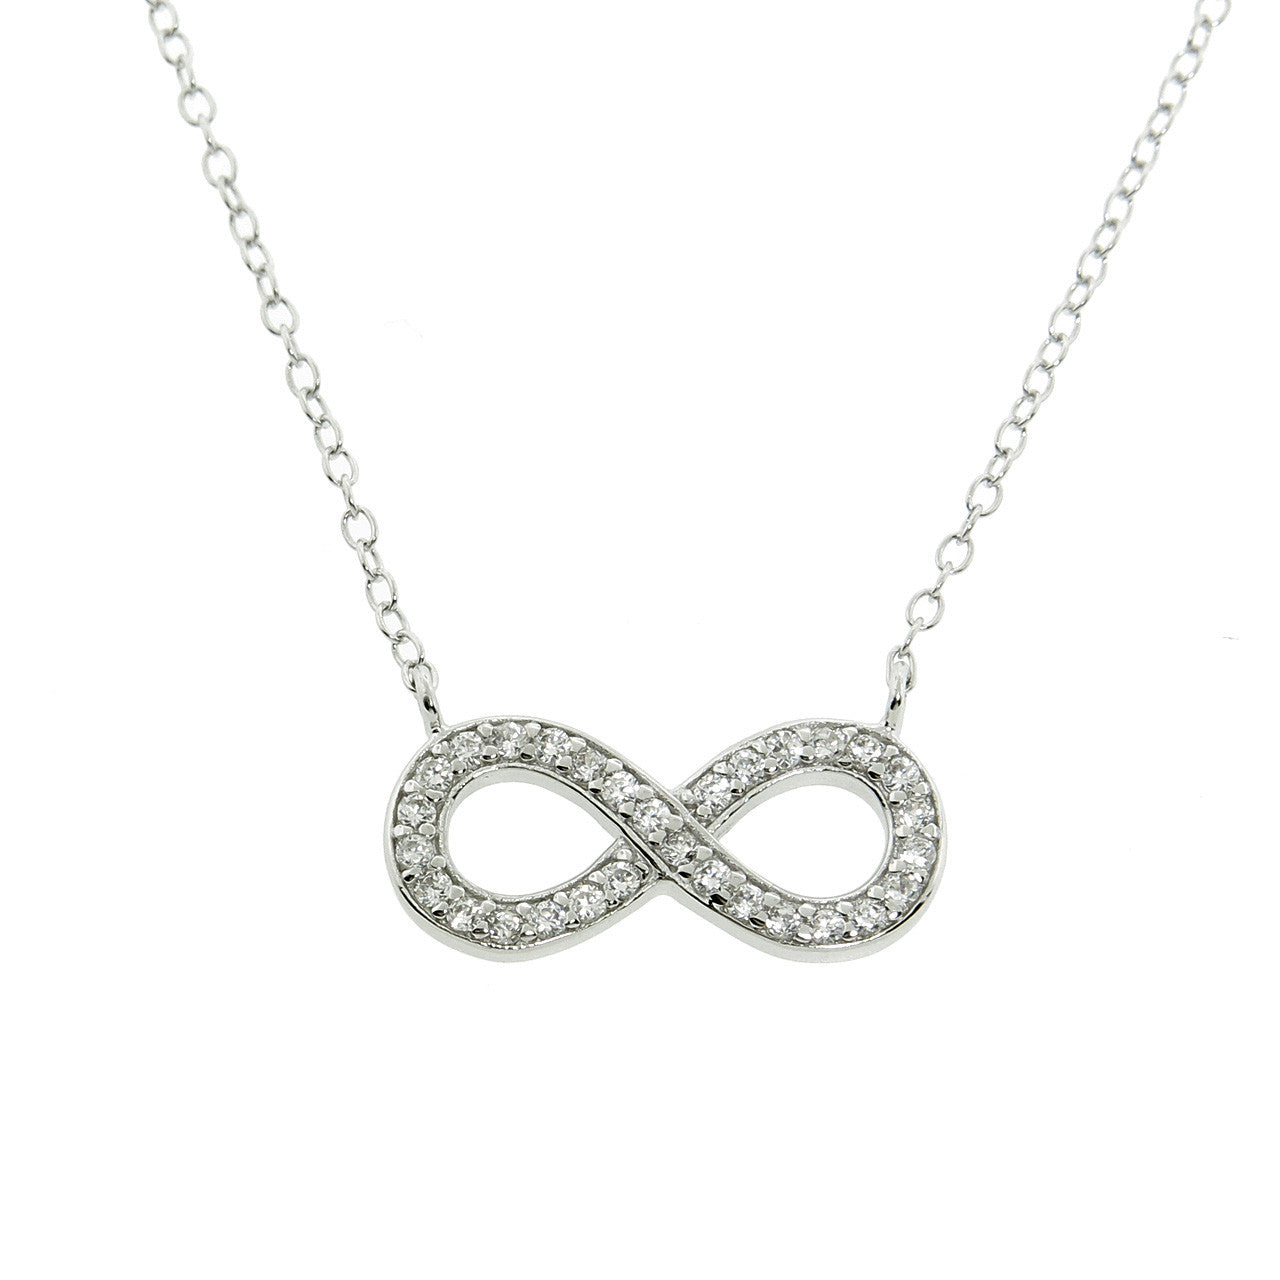 Sterling Silver Infinity Pave Necklace